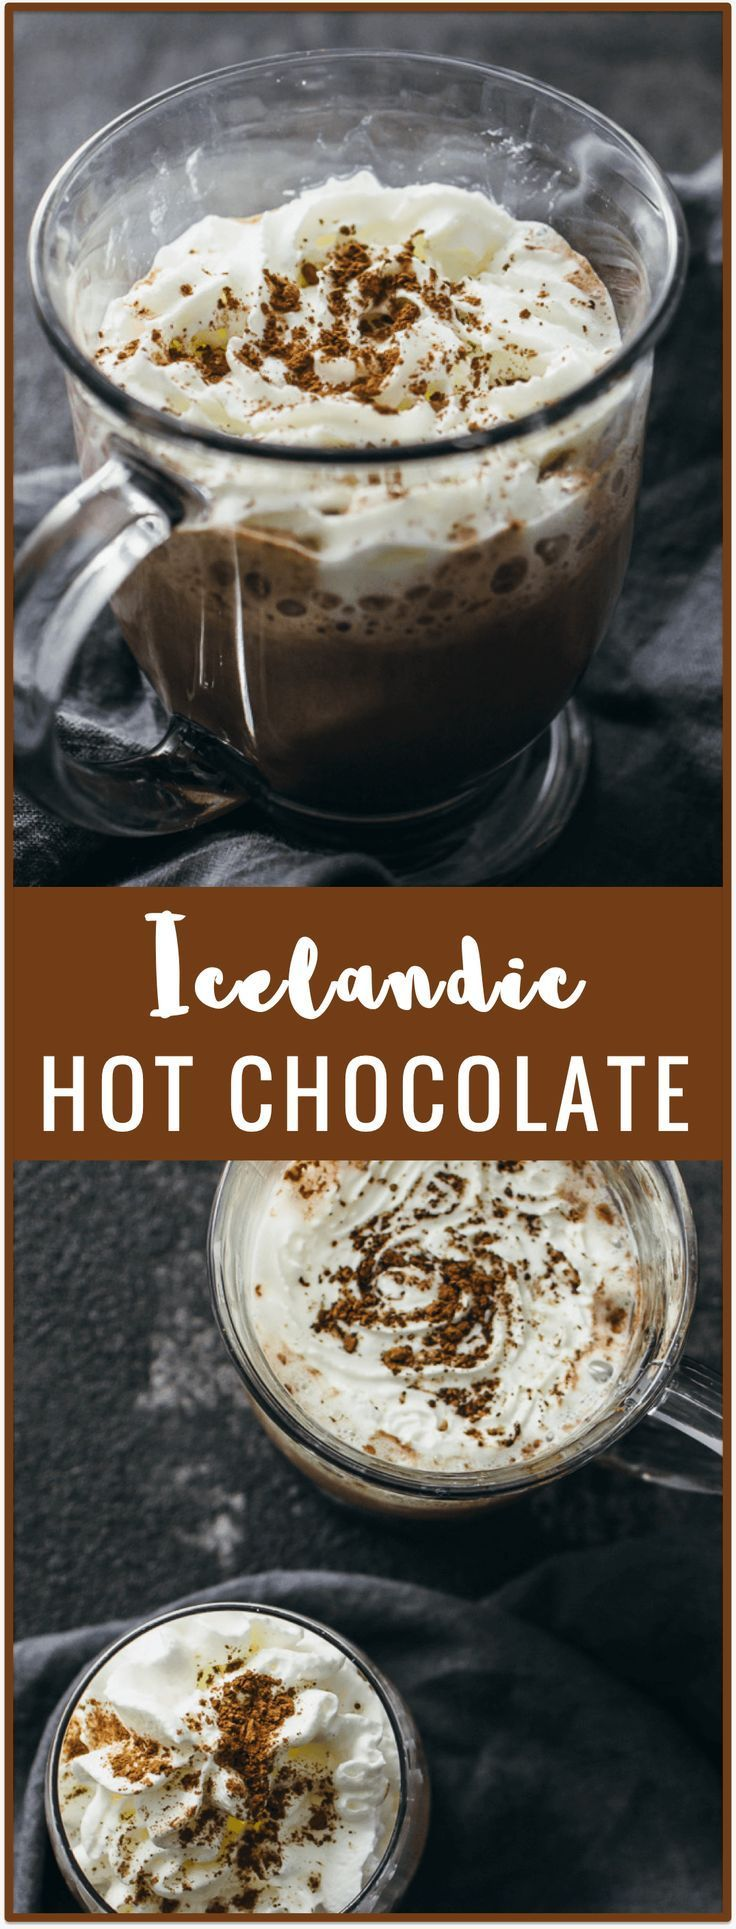 Icelandic hot chocolate - Skip the pre-made mixes and make your own homemade hot chocolate Icelandic-style! The trick is adding sea salt, which really elevates this popular drink into a whole new dimension. This is an easy recipe using ingredients you probably already have, so definitely try it out! - savorytooth.com